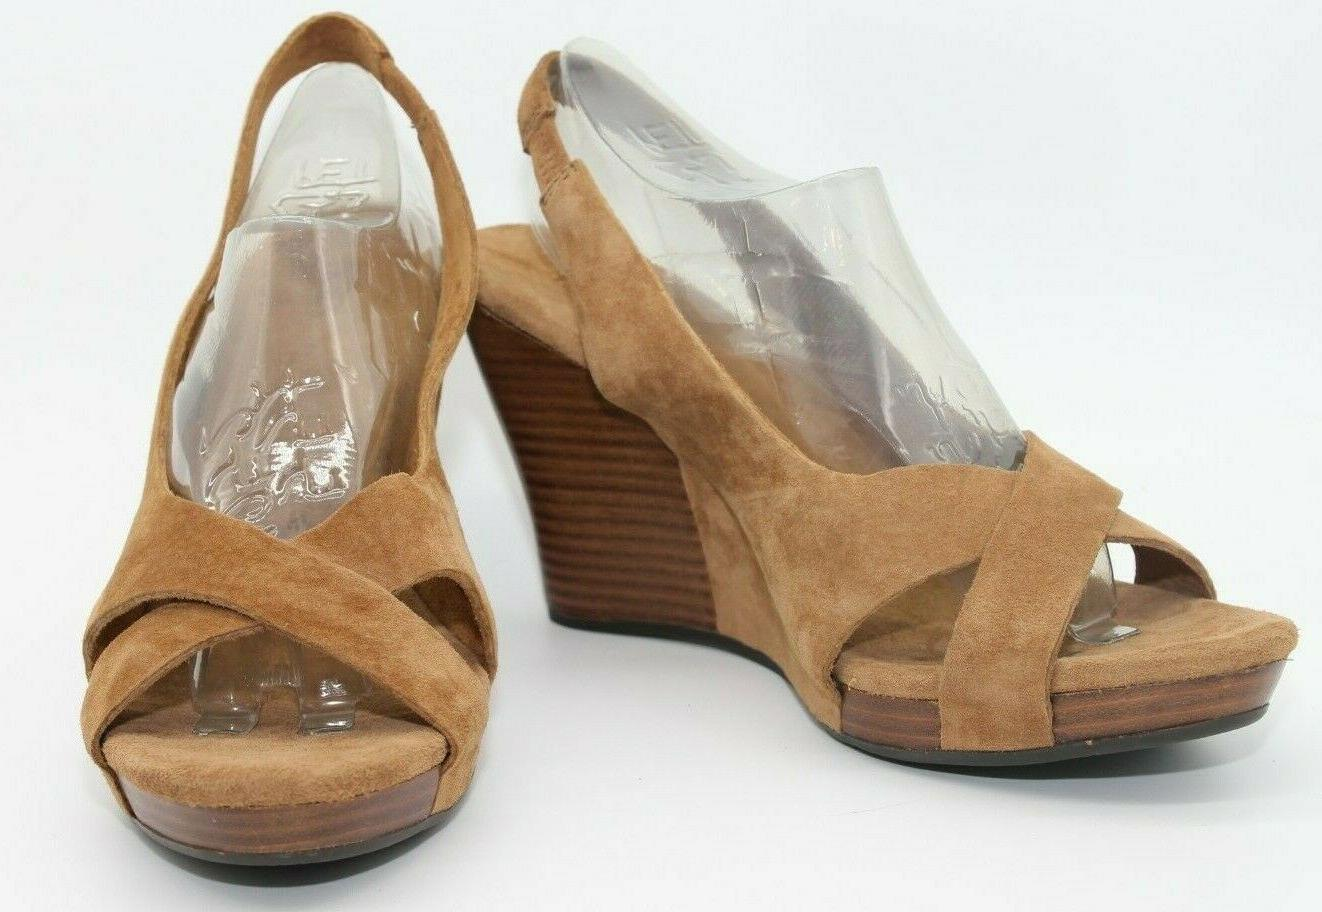 NEW! AUSTRALIA BROWN SUEDE UPPER LEATHER STRAP SIZE 8